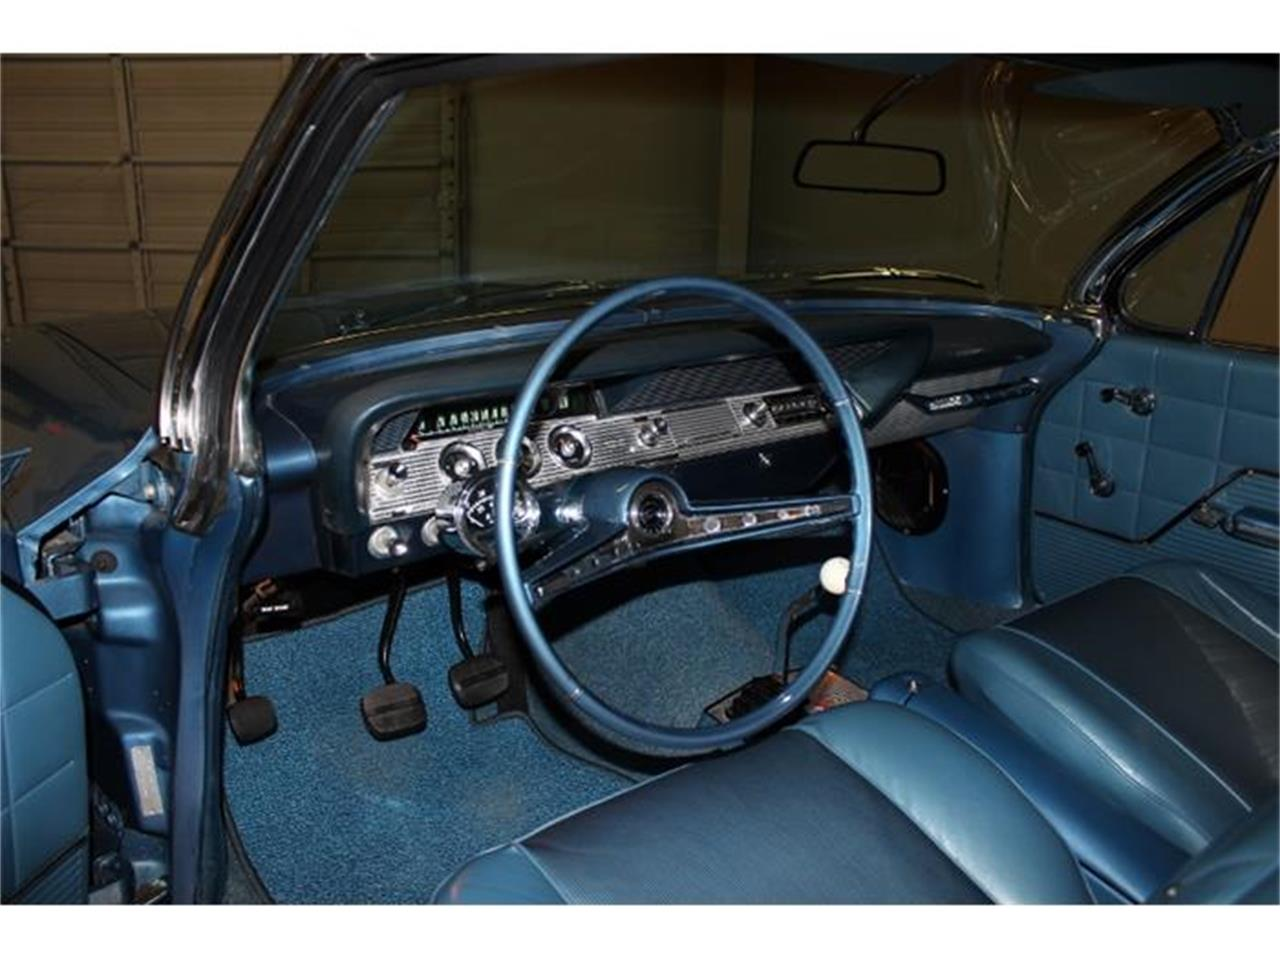 Large Picture of '62 Chevrolet Impala SS located in Lillington North Carolina - $55,000.00 Offered by East Coast Classic Cars - IT0G